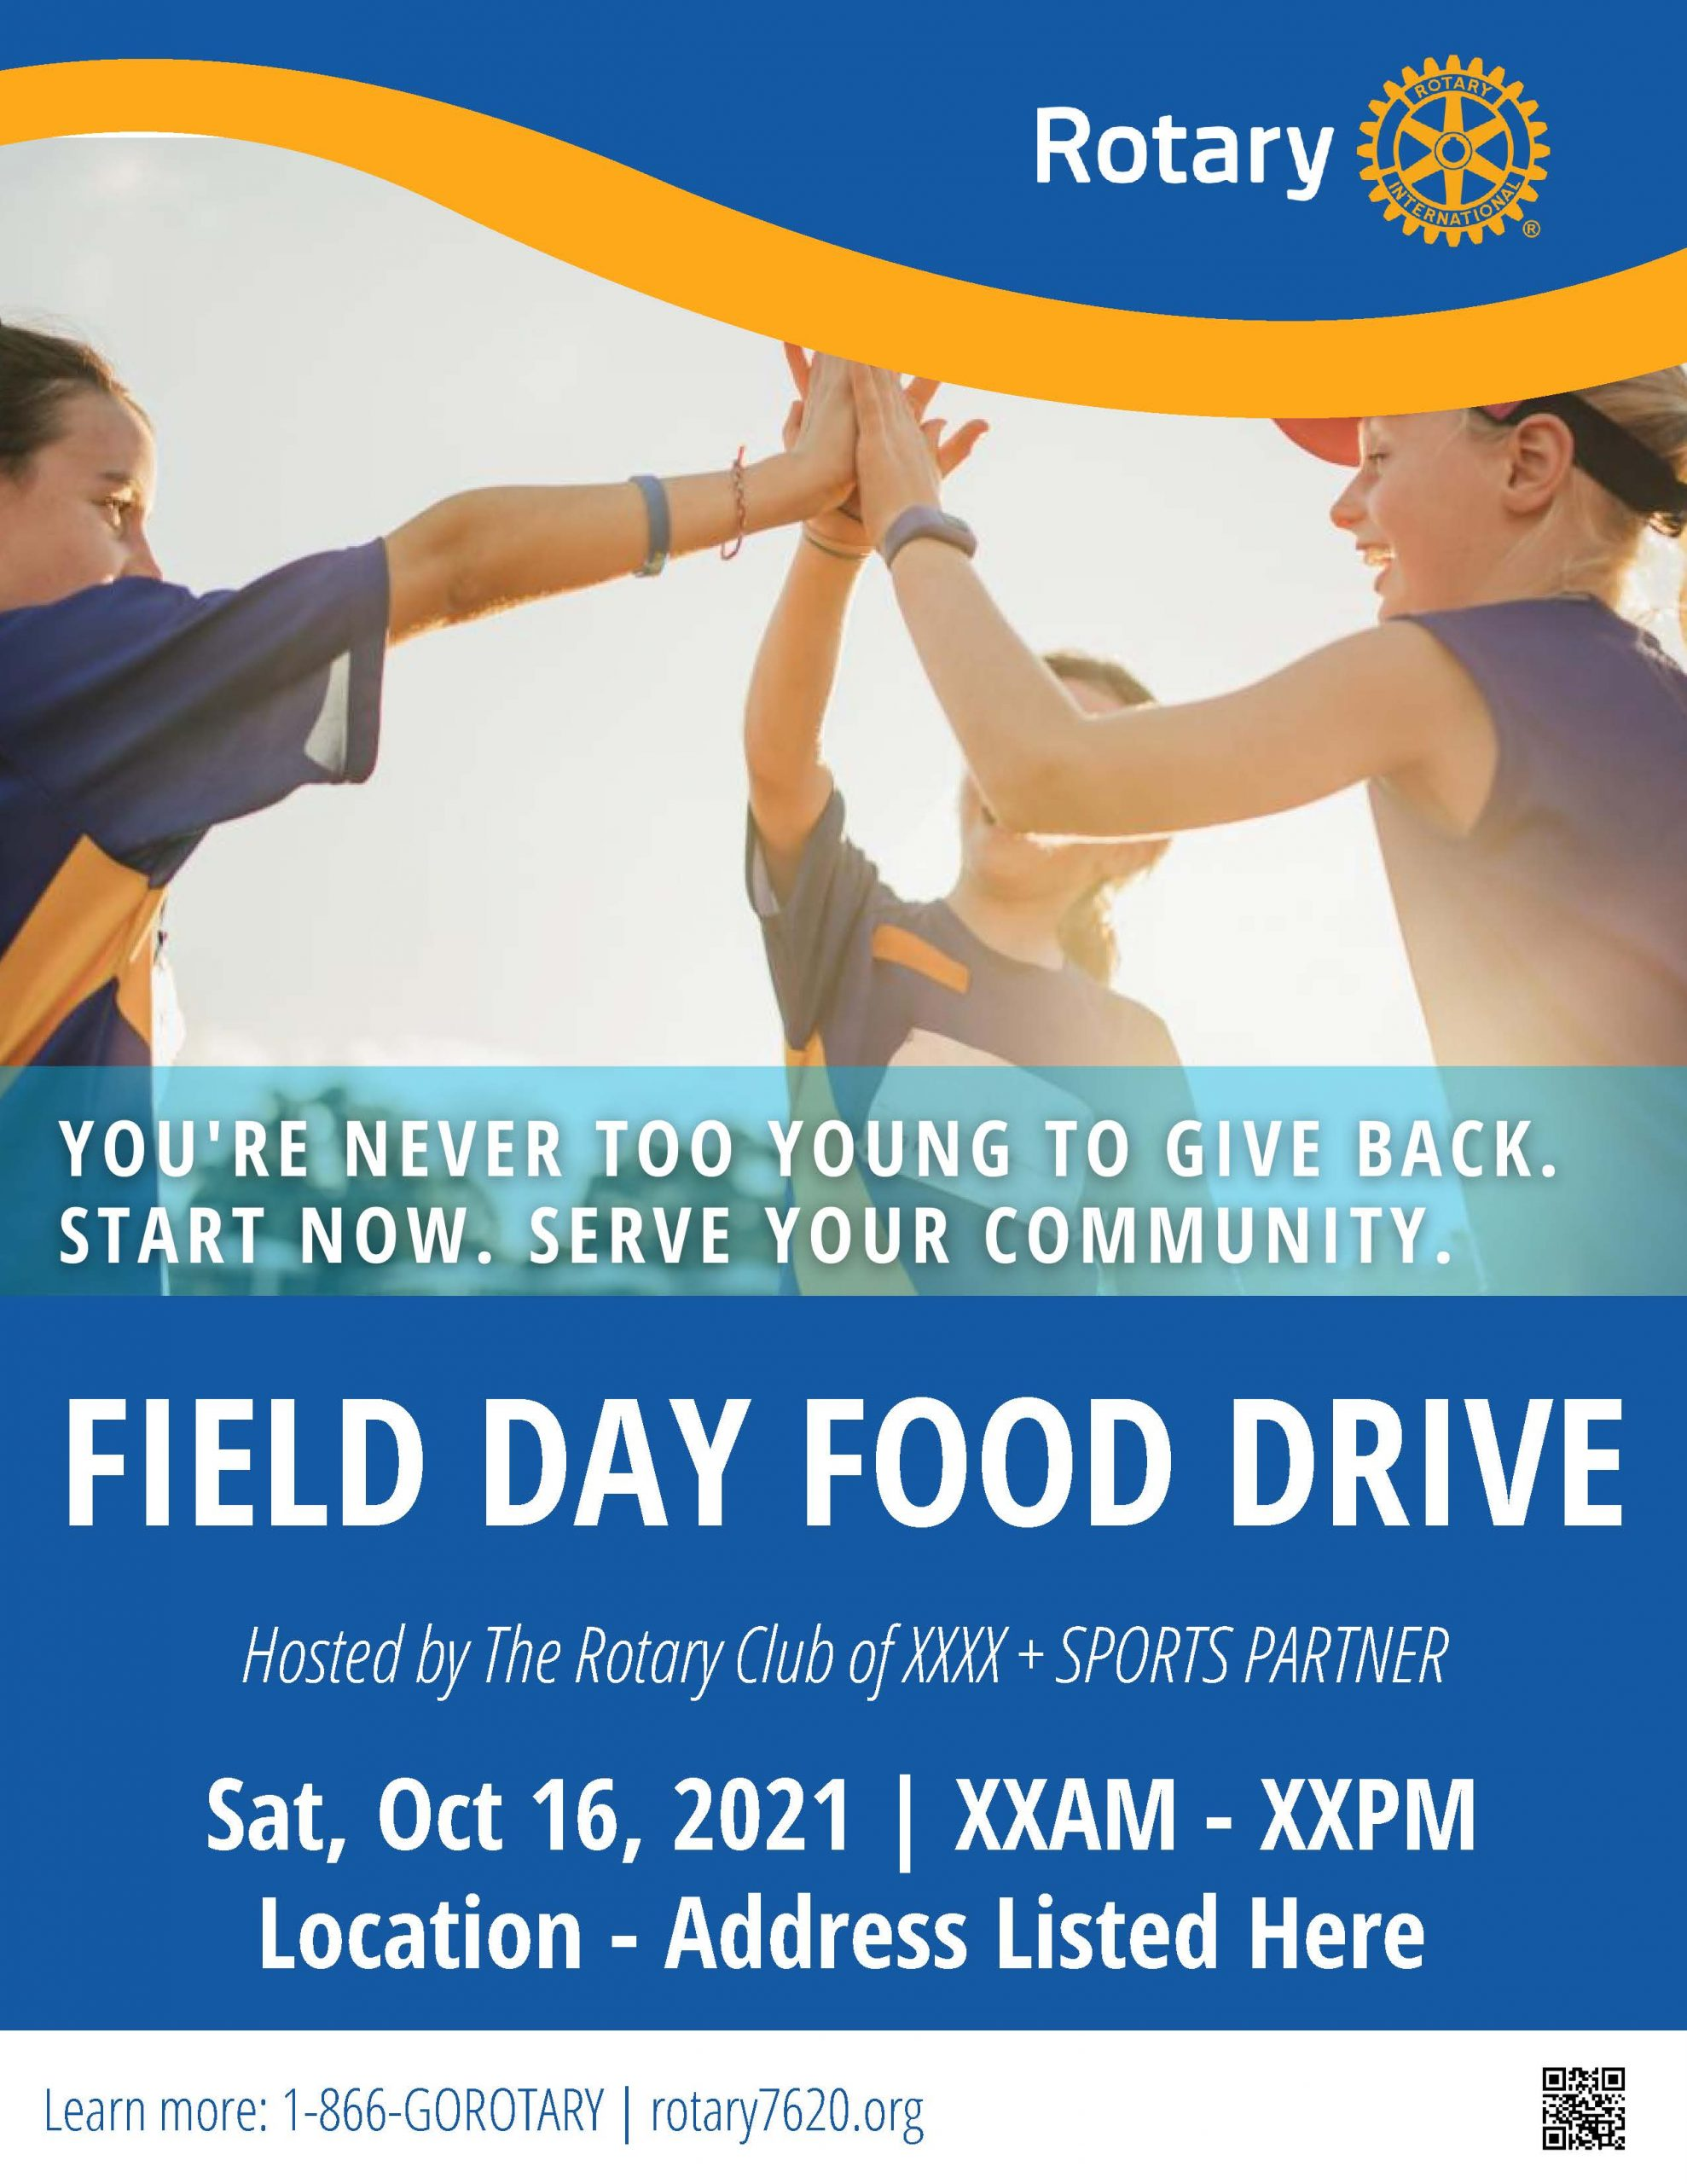 Oct 16 Field Day Food Drive Poster